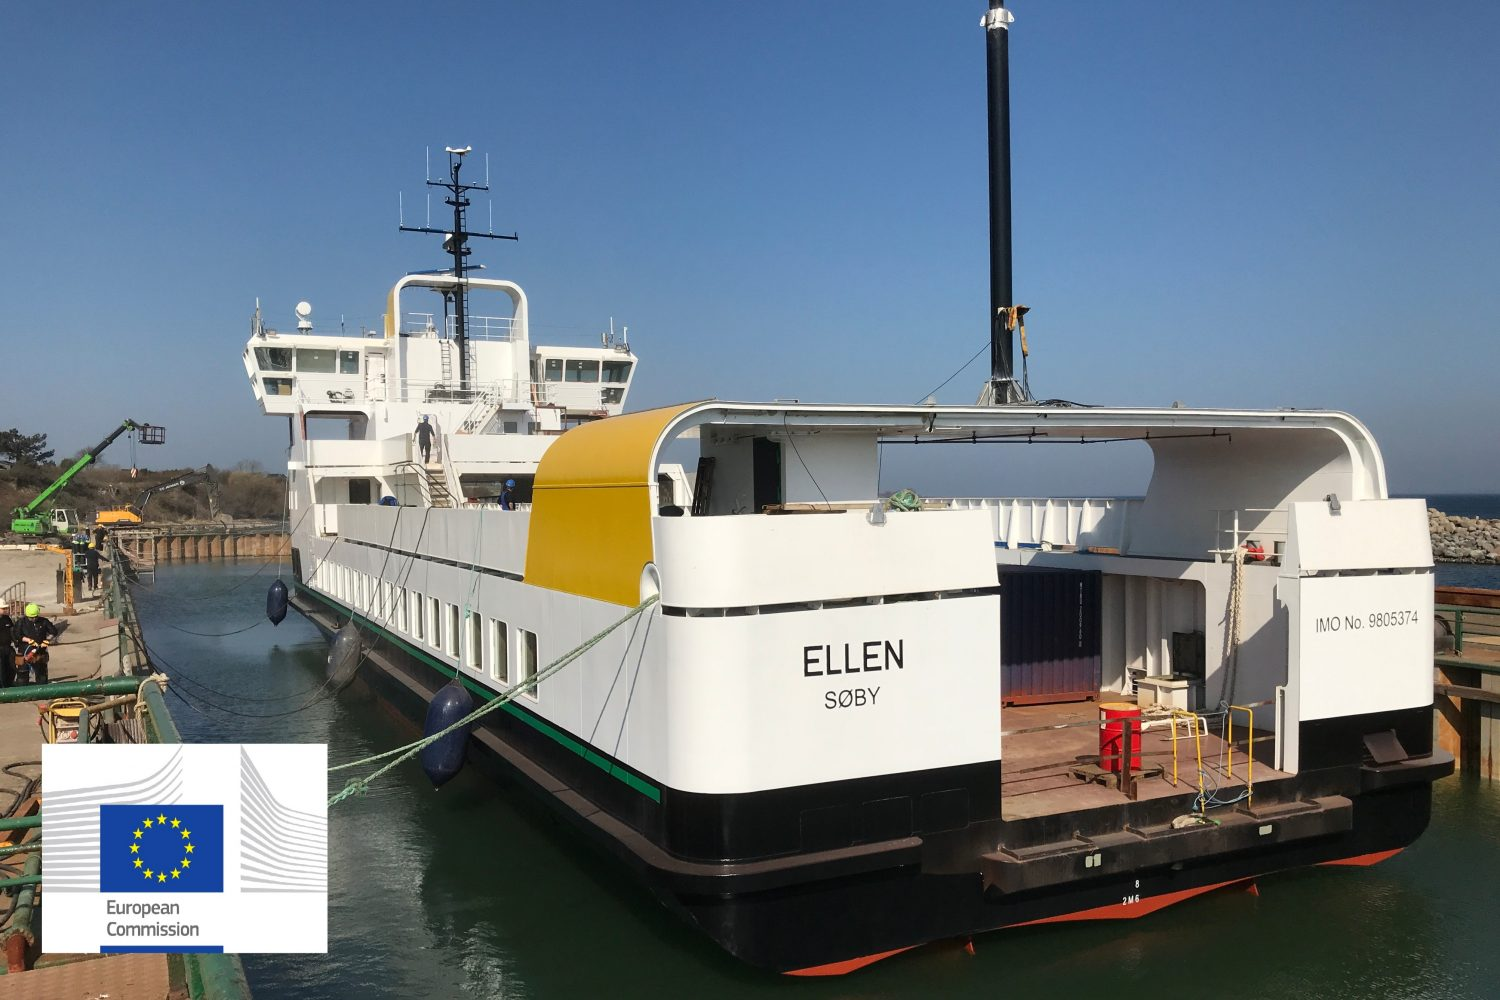 A view of the Ellen, Denmark's first fully electric ferry